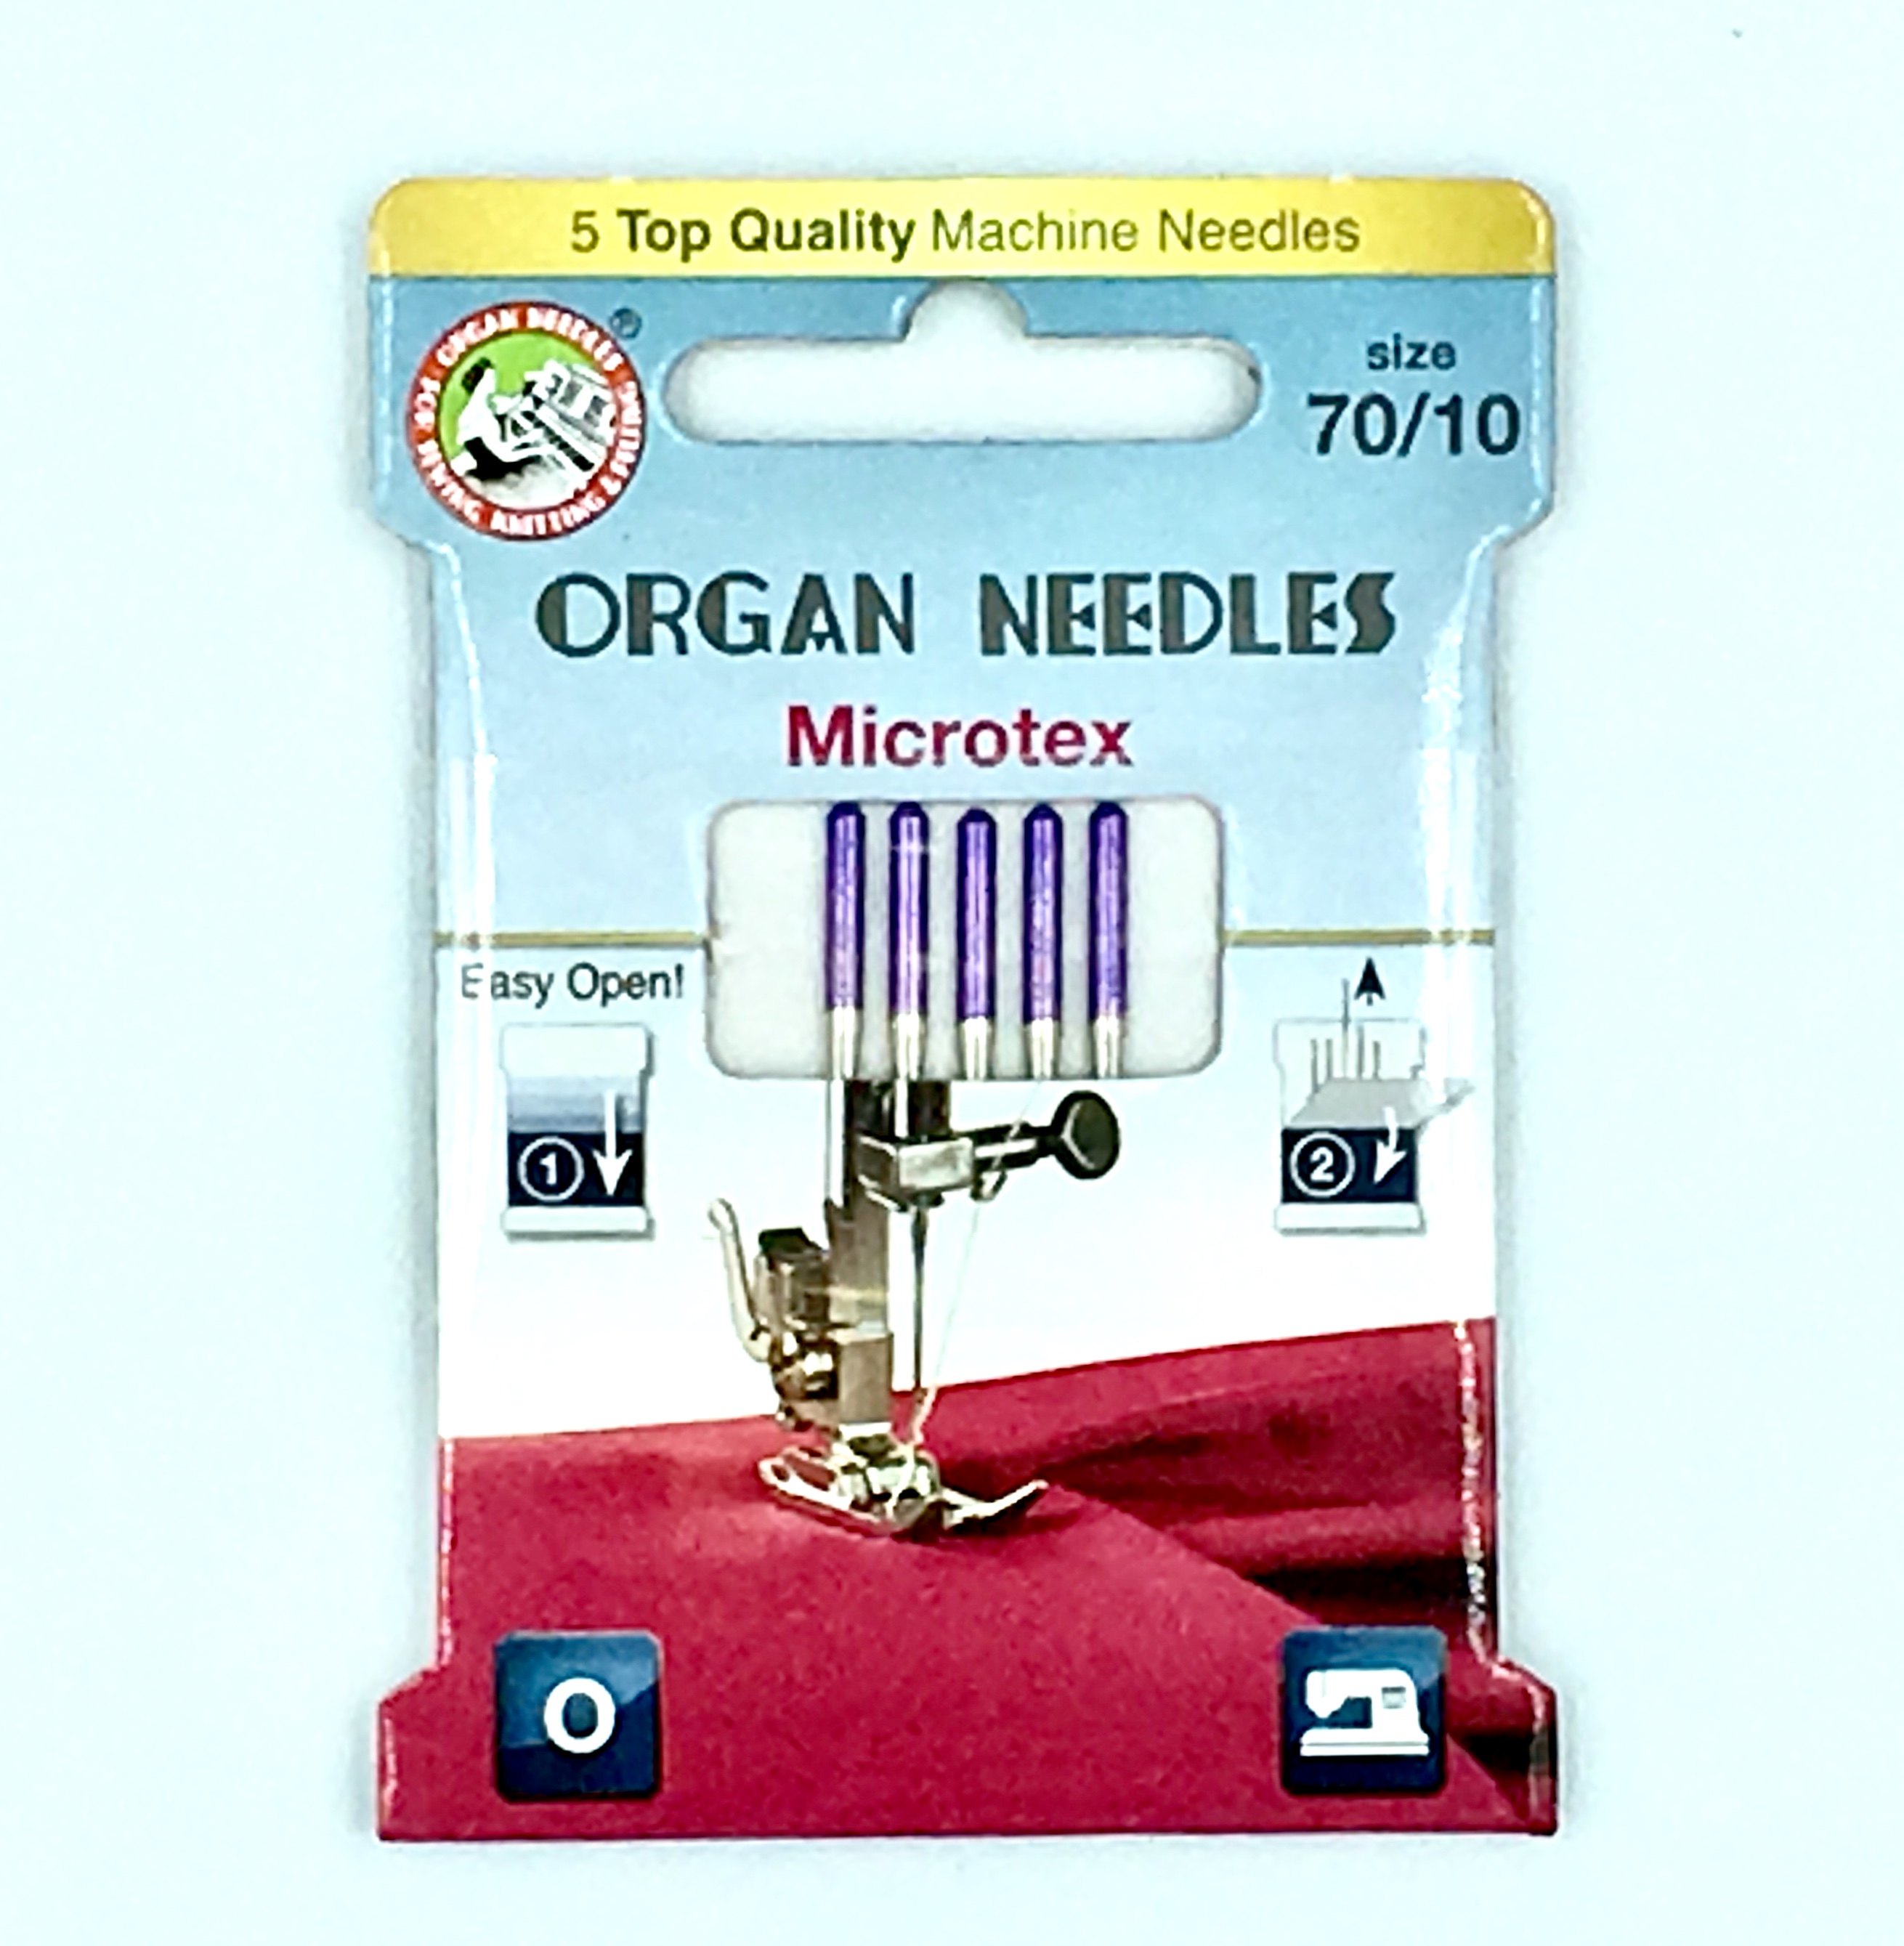 Organ 130/705H - Microtex ECO pack 5 - 1 size